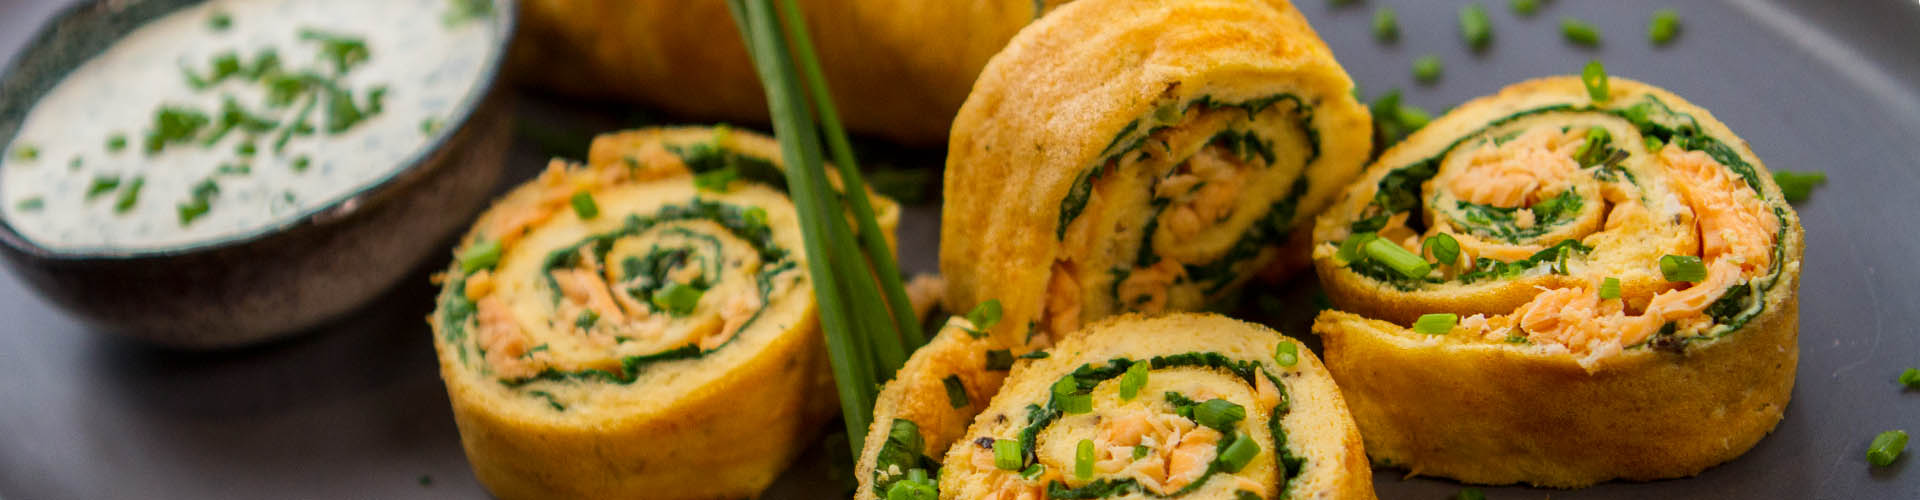 Salmon spinach herb souffle baked omelette